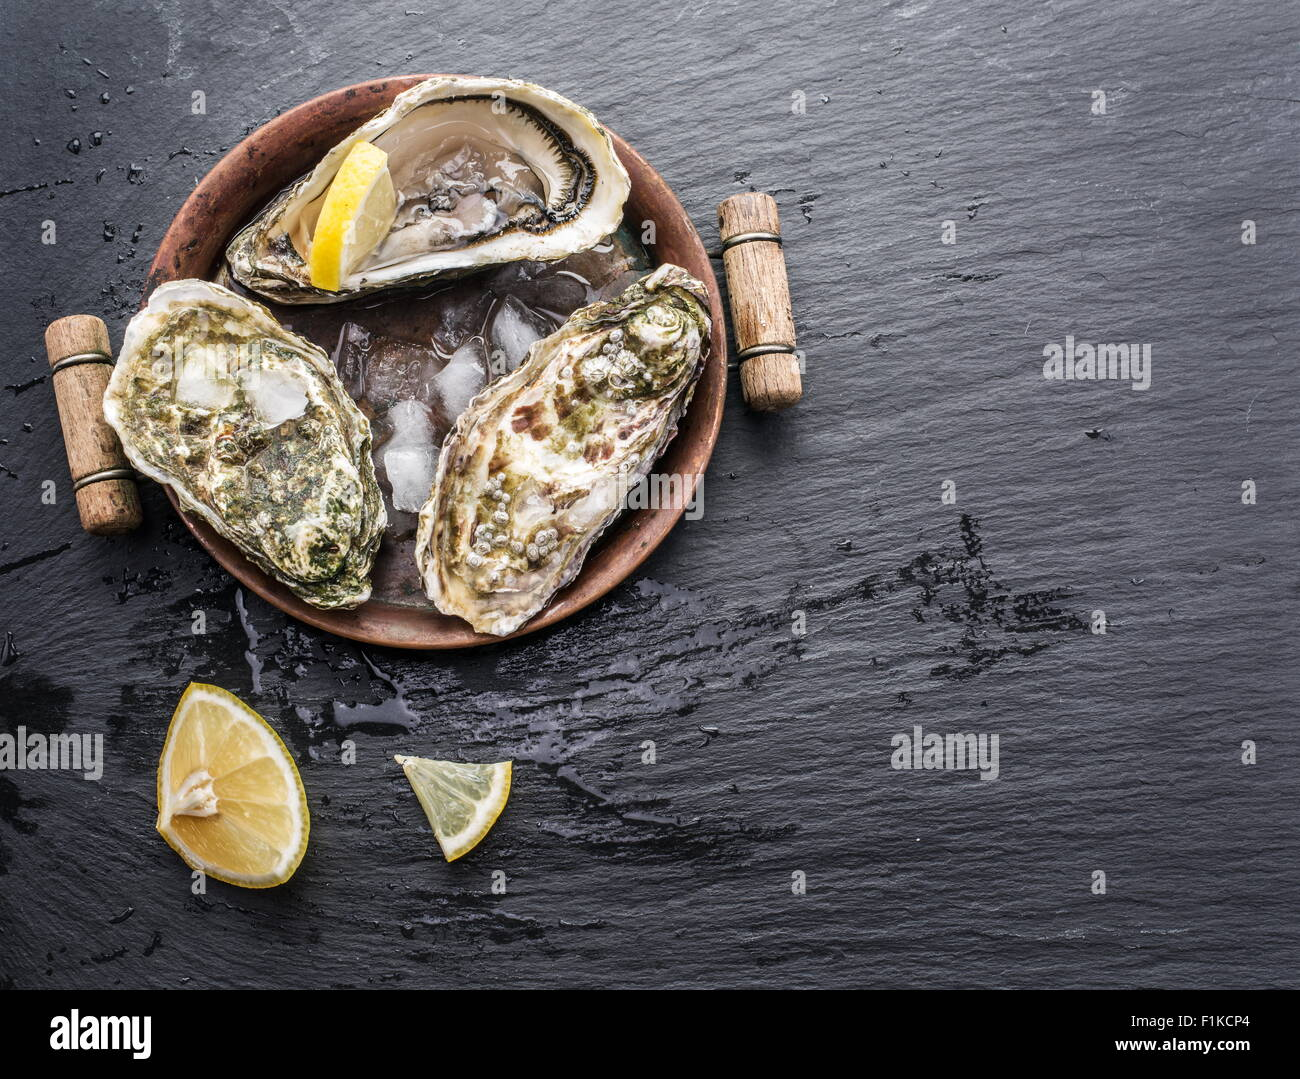 Raw oysters on the graphite board. - Stock Image